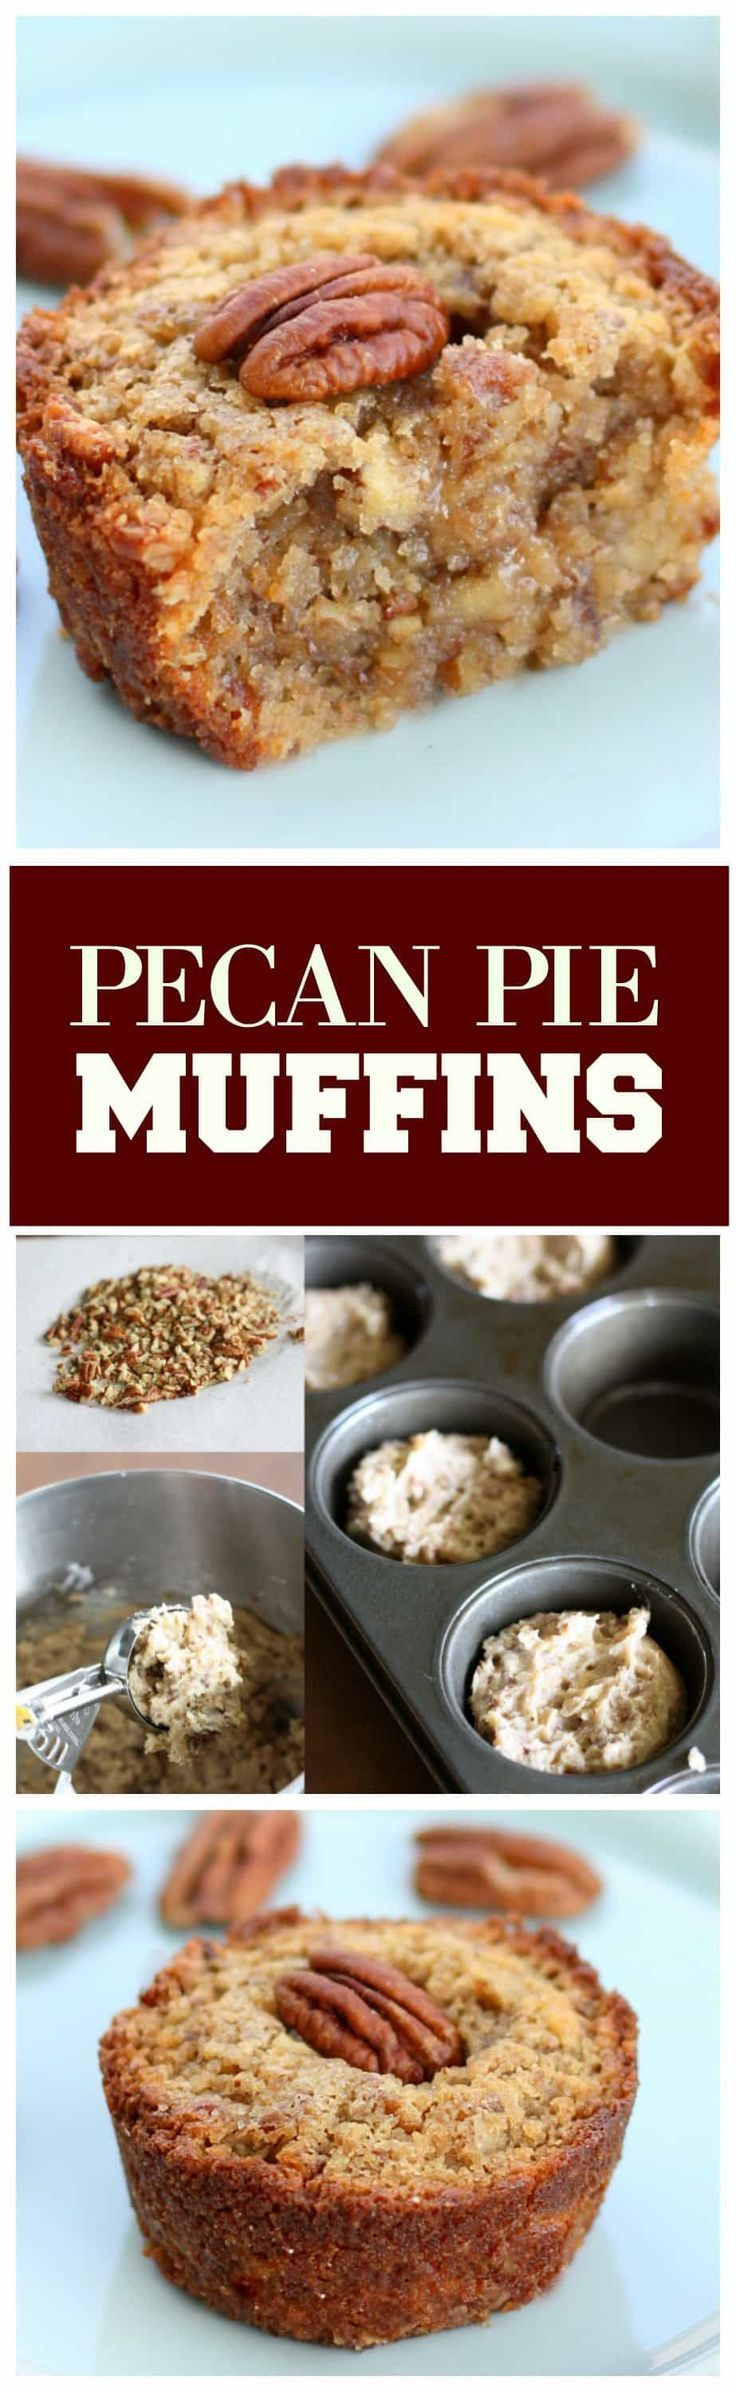 Pecan Pie Muffins - Muffin meets pecan pie. Mini versions that everyone loves. the-girl-who-ate-everything.com